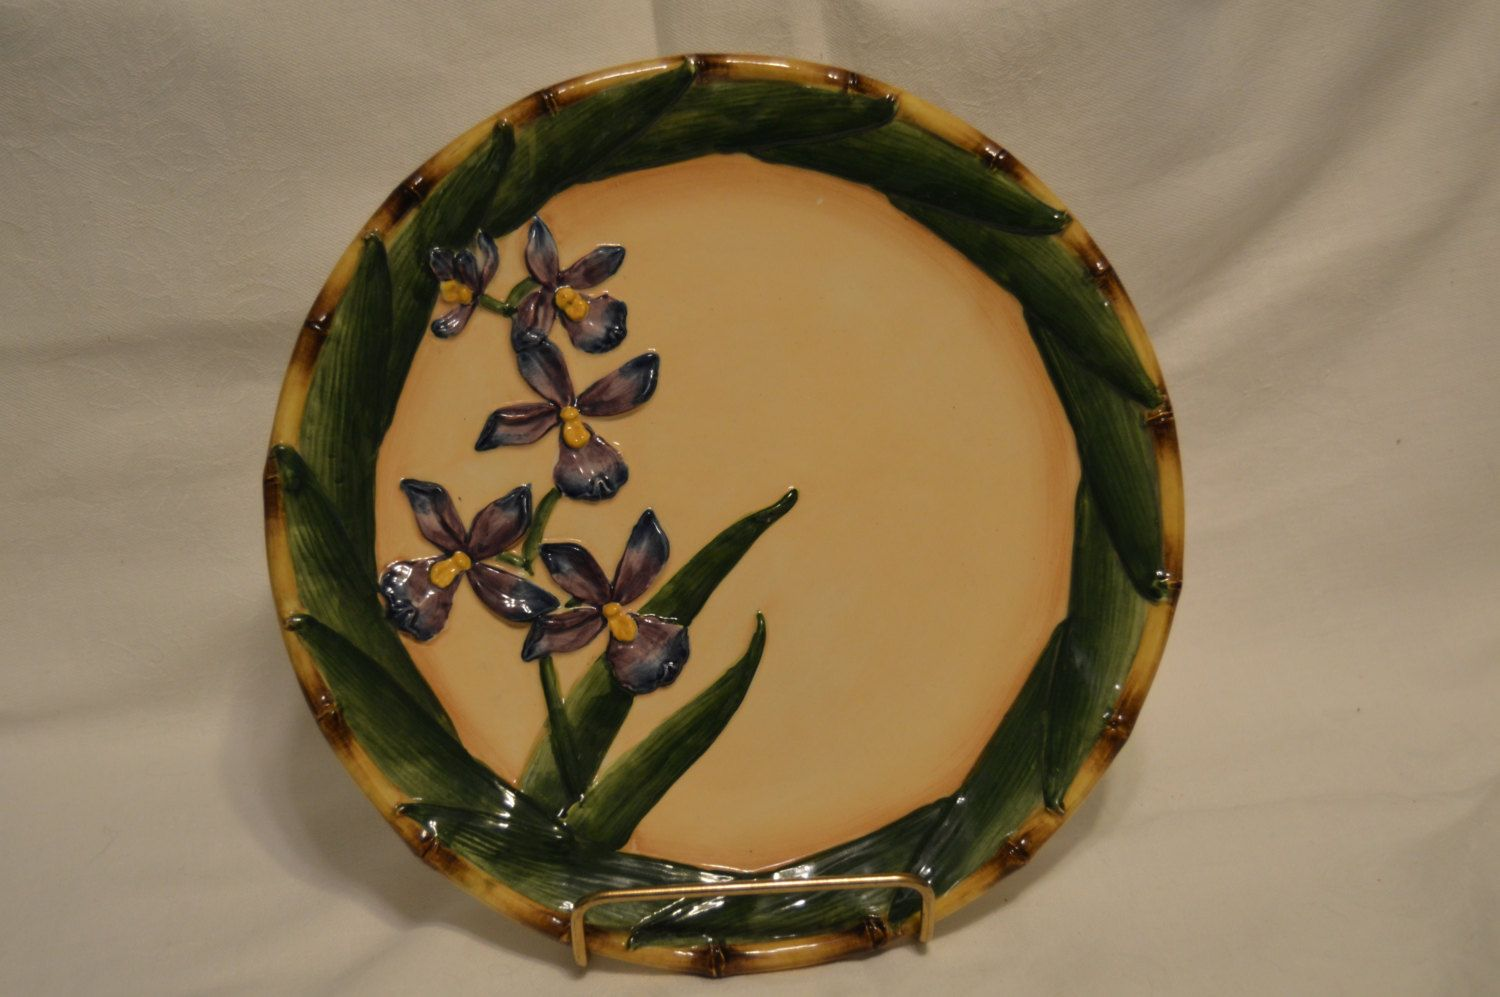 Handpainted Exclusive Pacific Rim China Plate by BigBlossomAntiques on Etsy & Pacific Rim Handpainted Exclusive China Plate Vintage Item #3457 ...